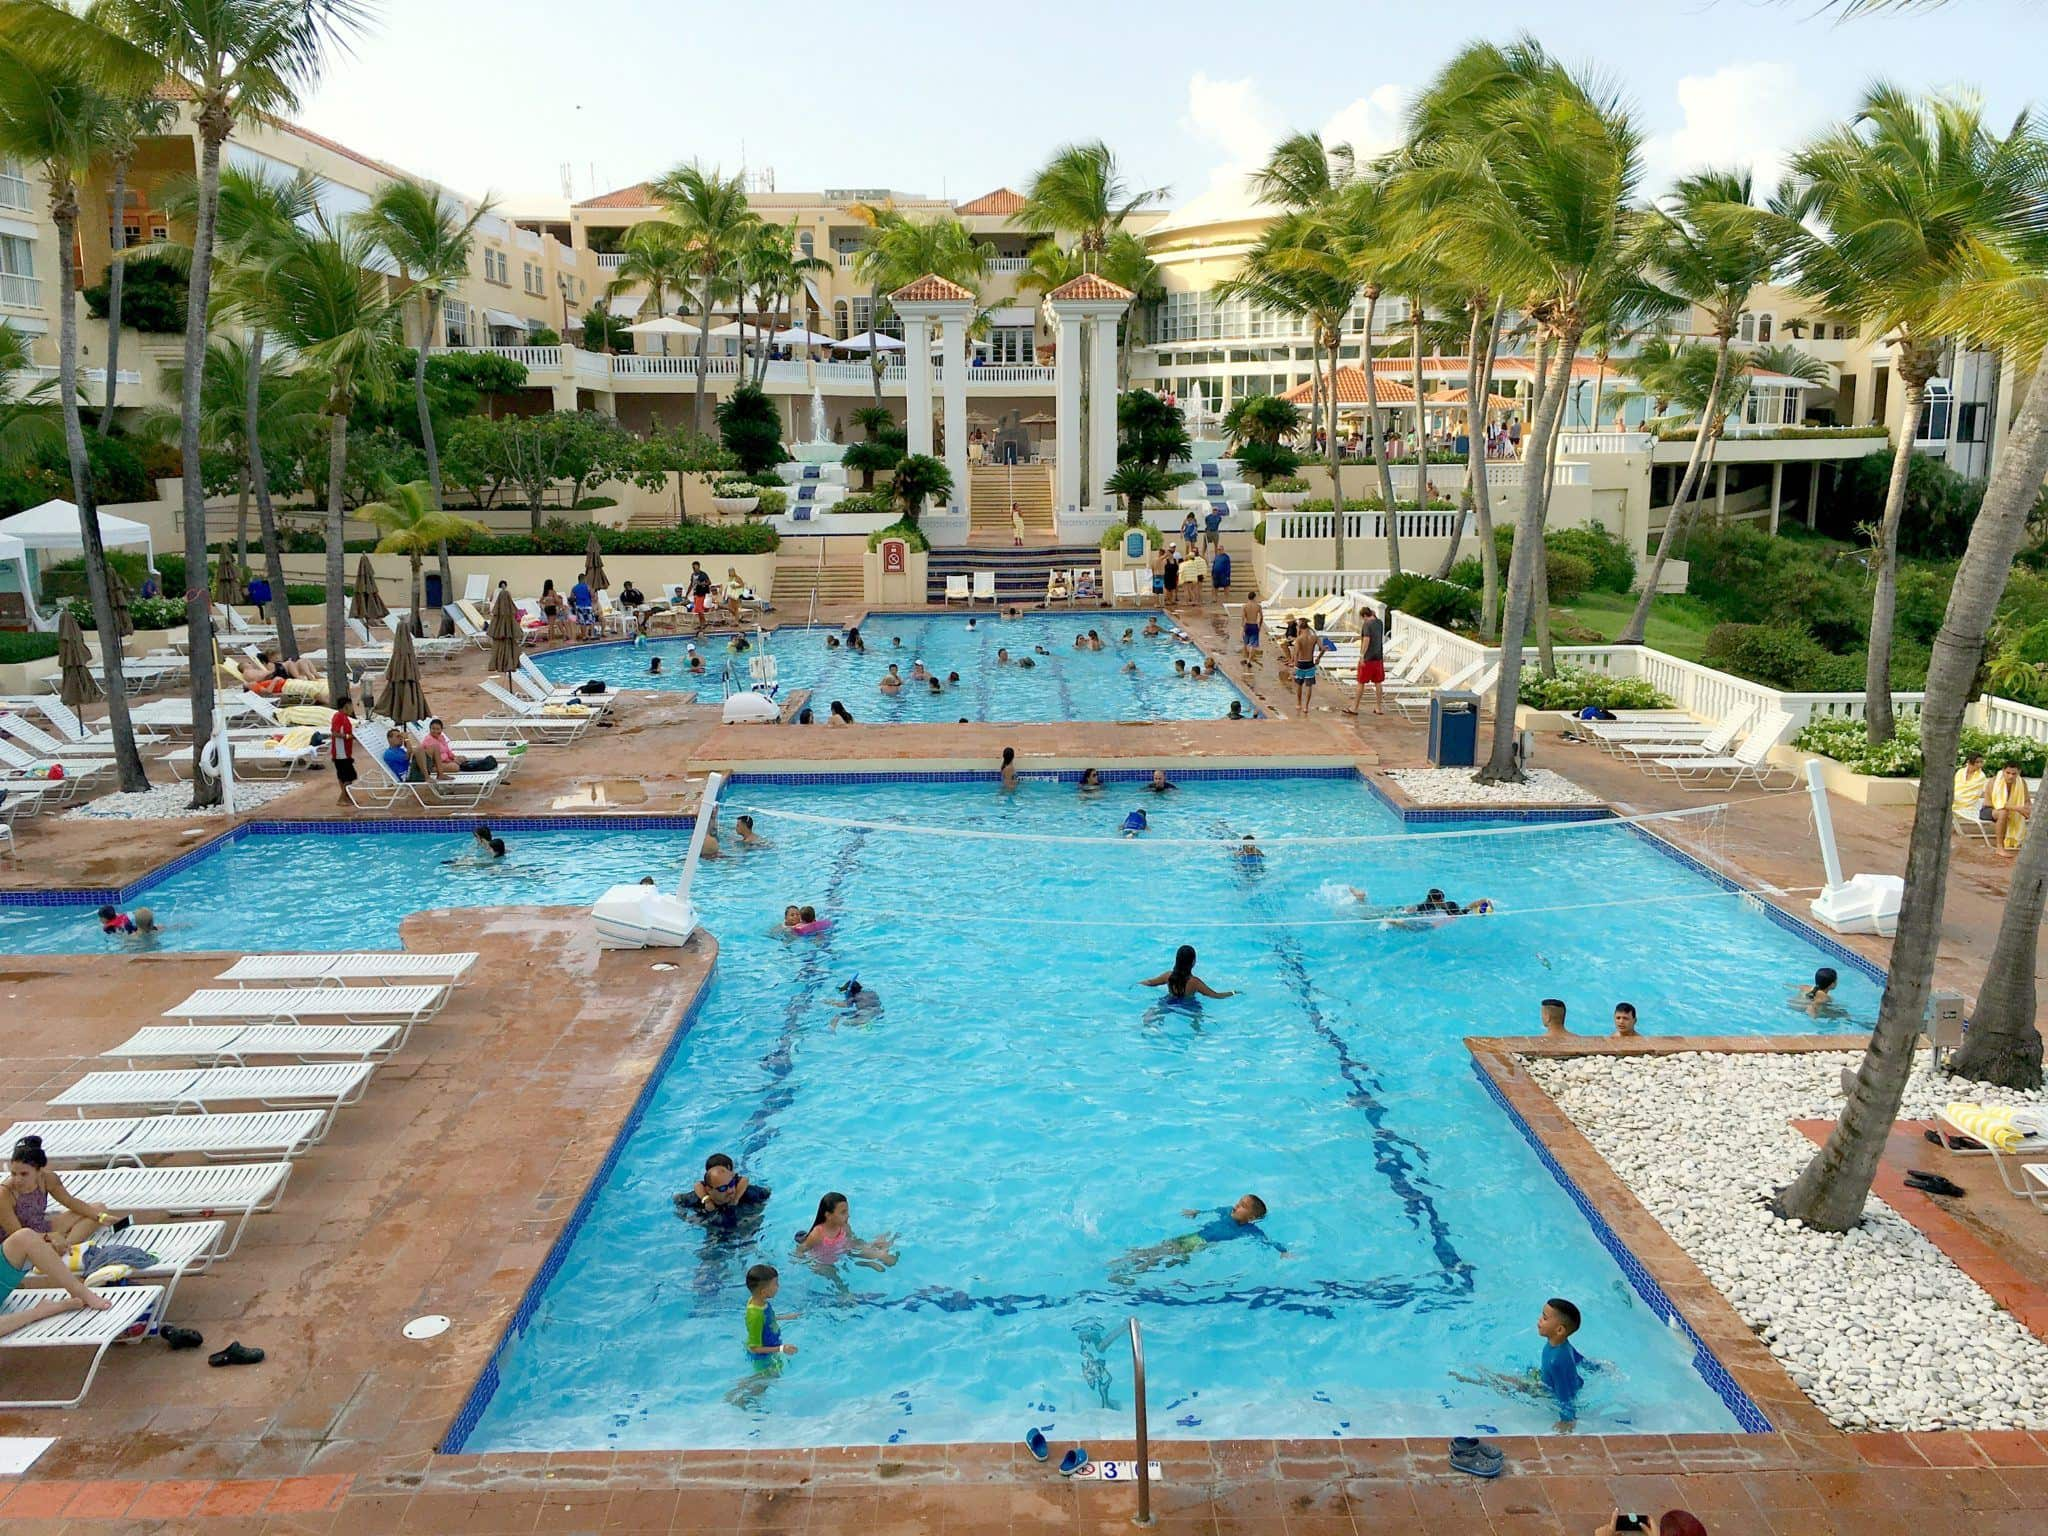 Freshwater pools, infinity edge pools, water park pools - it's a pool-lover's paradise at El Conquistador Resort with kids!